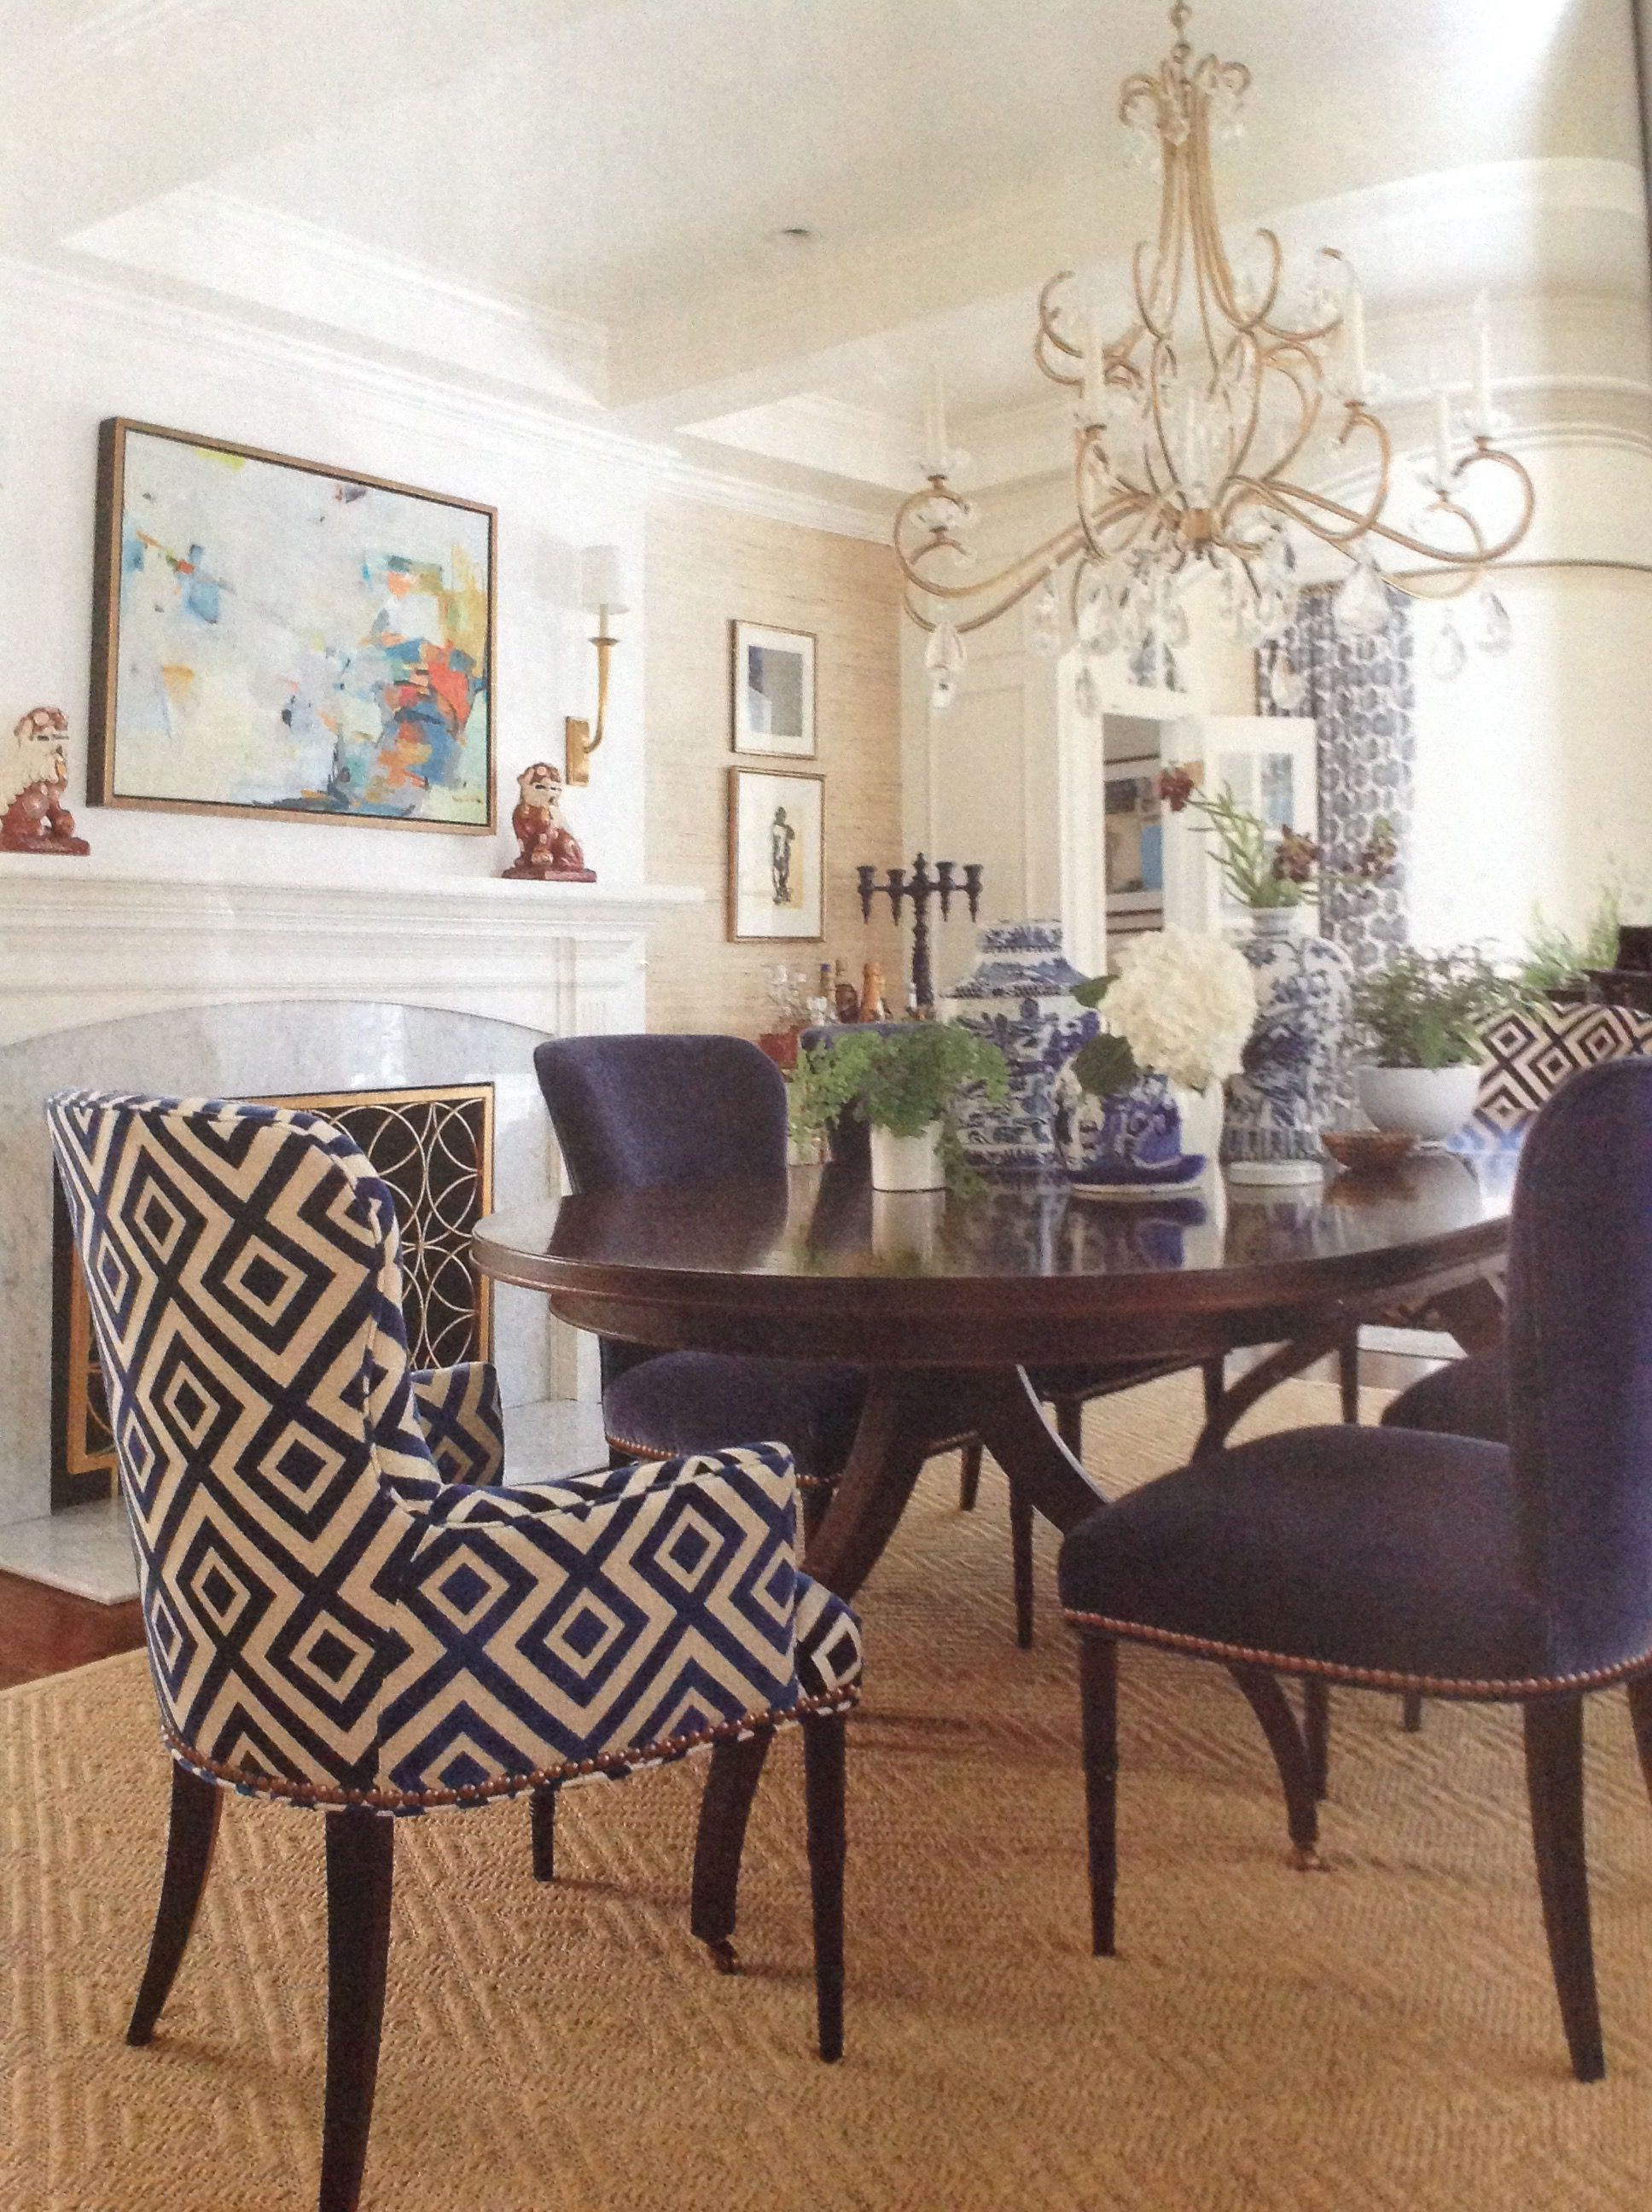 Pin By Susan Johnson On Home Decor Home Decor Dining Chairs Decor